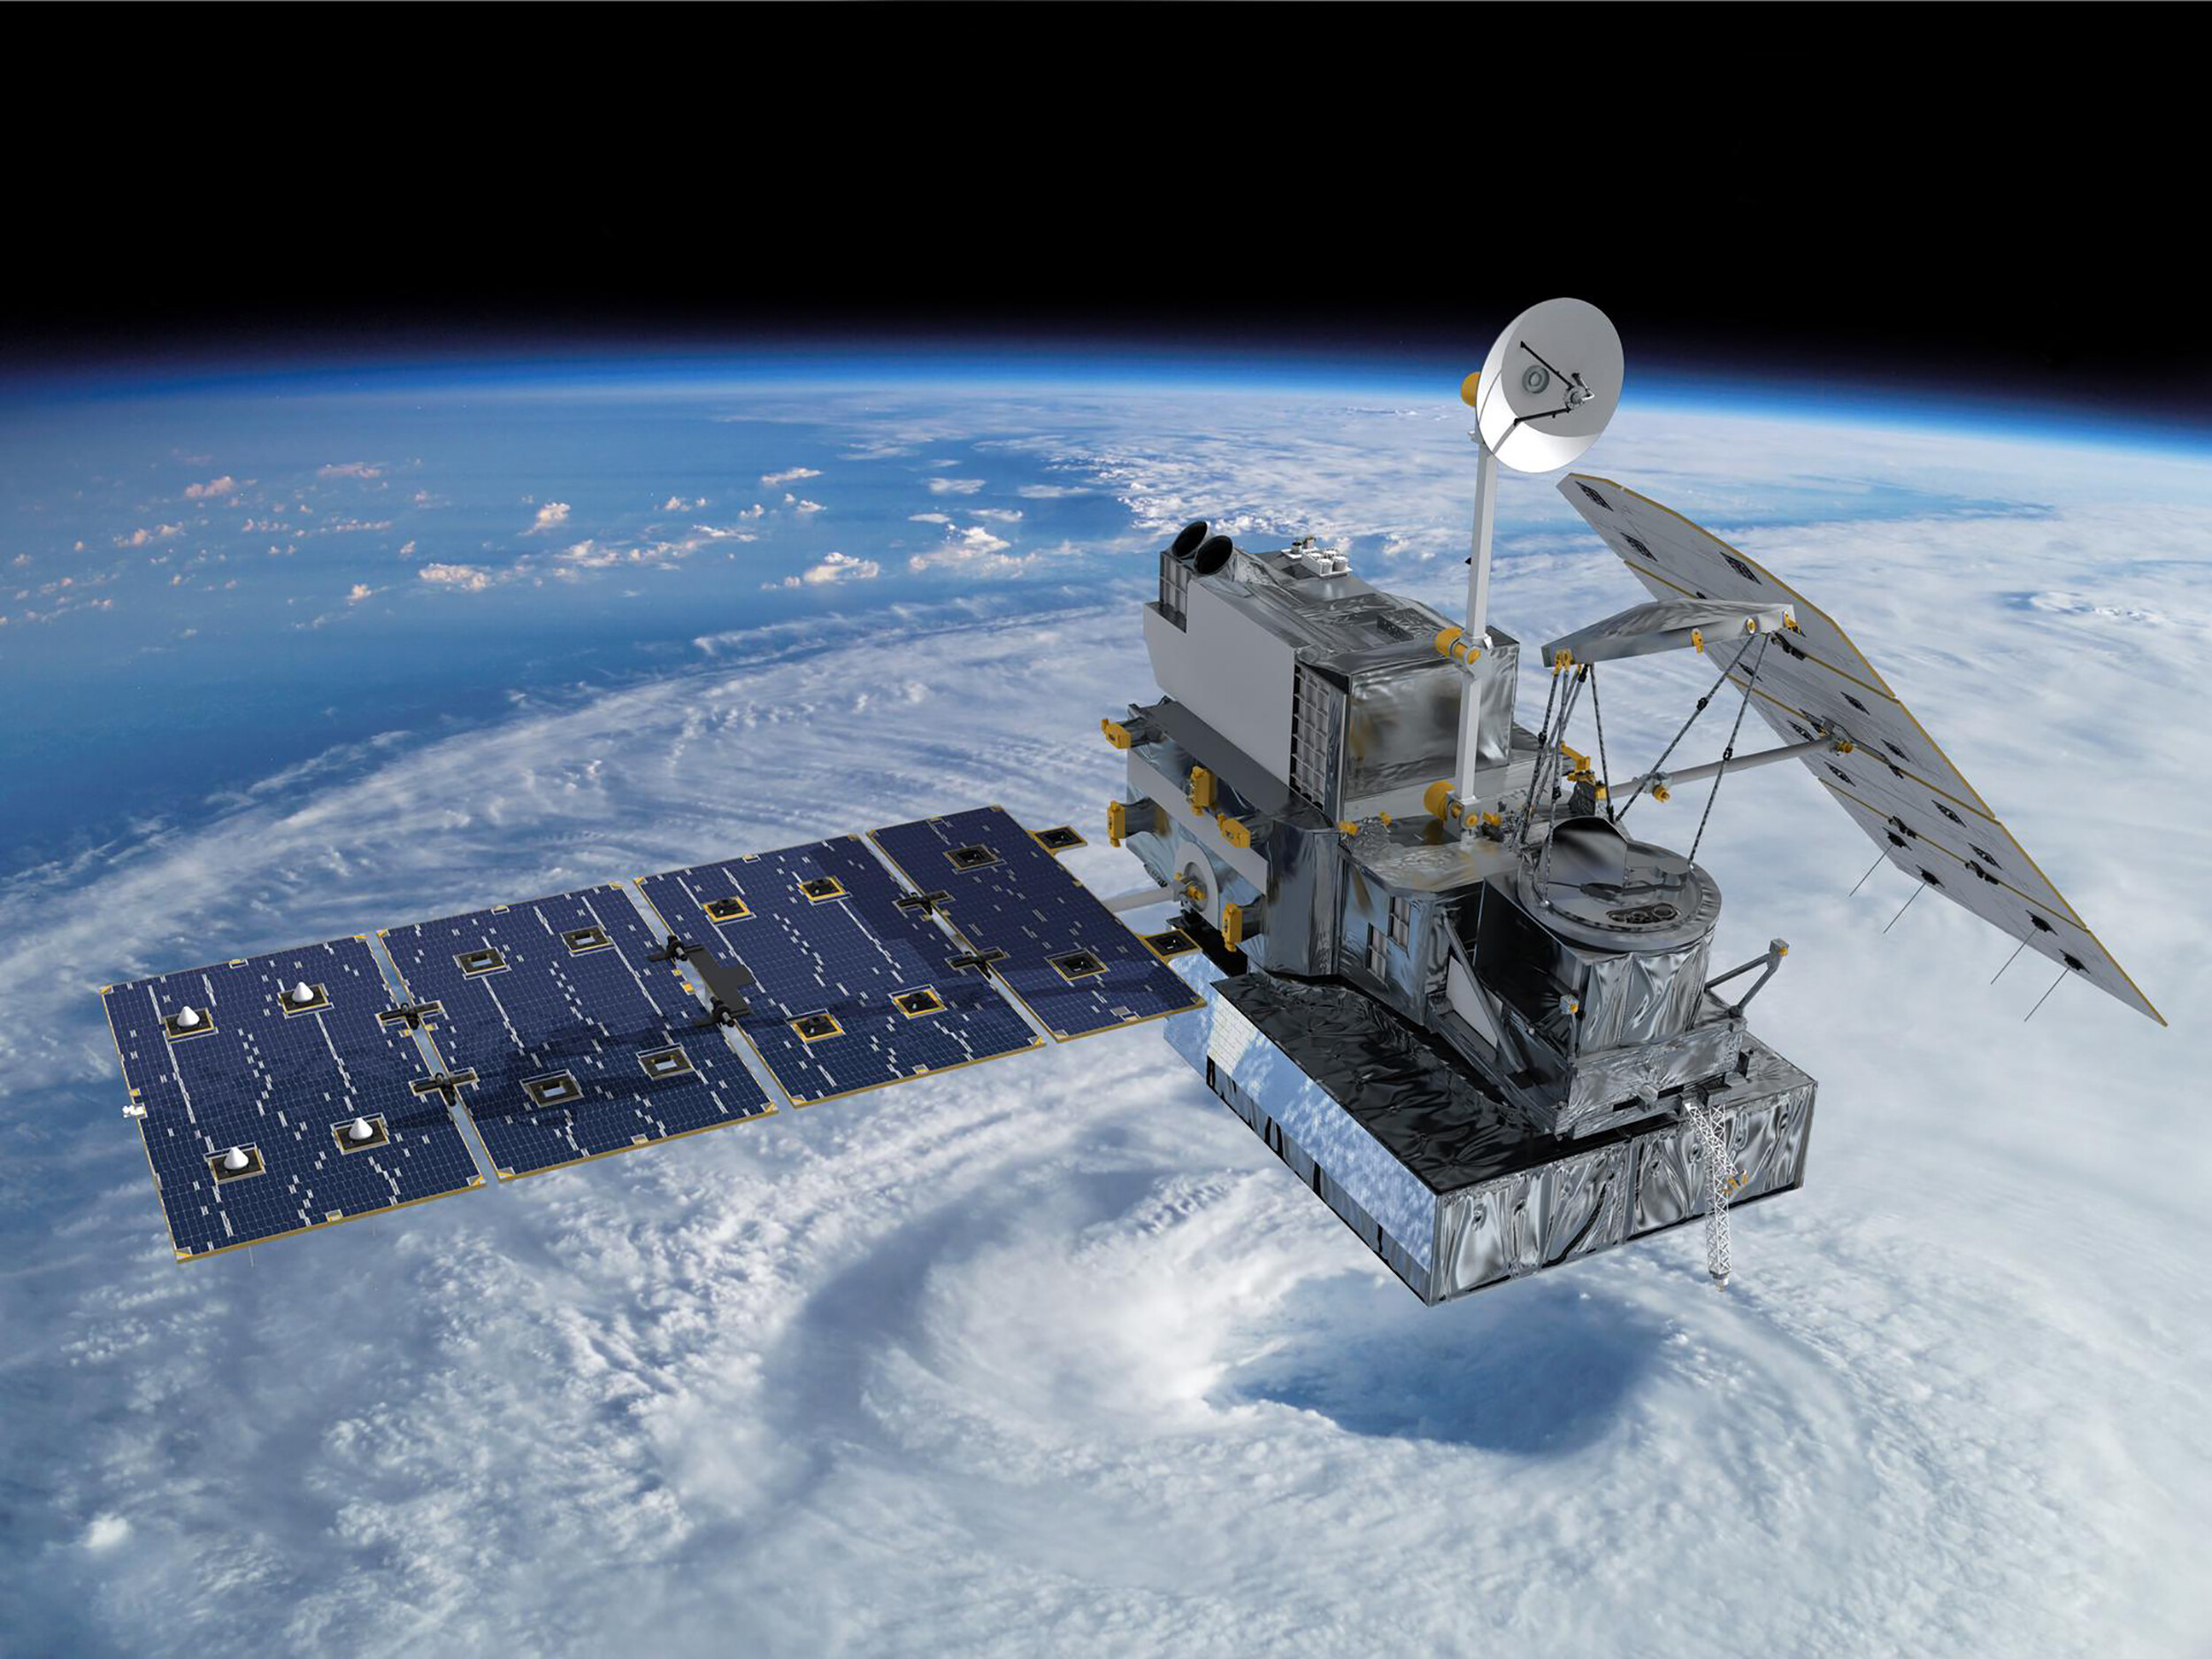 US inks $20 million deal to launch high-tech weather satellites in space